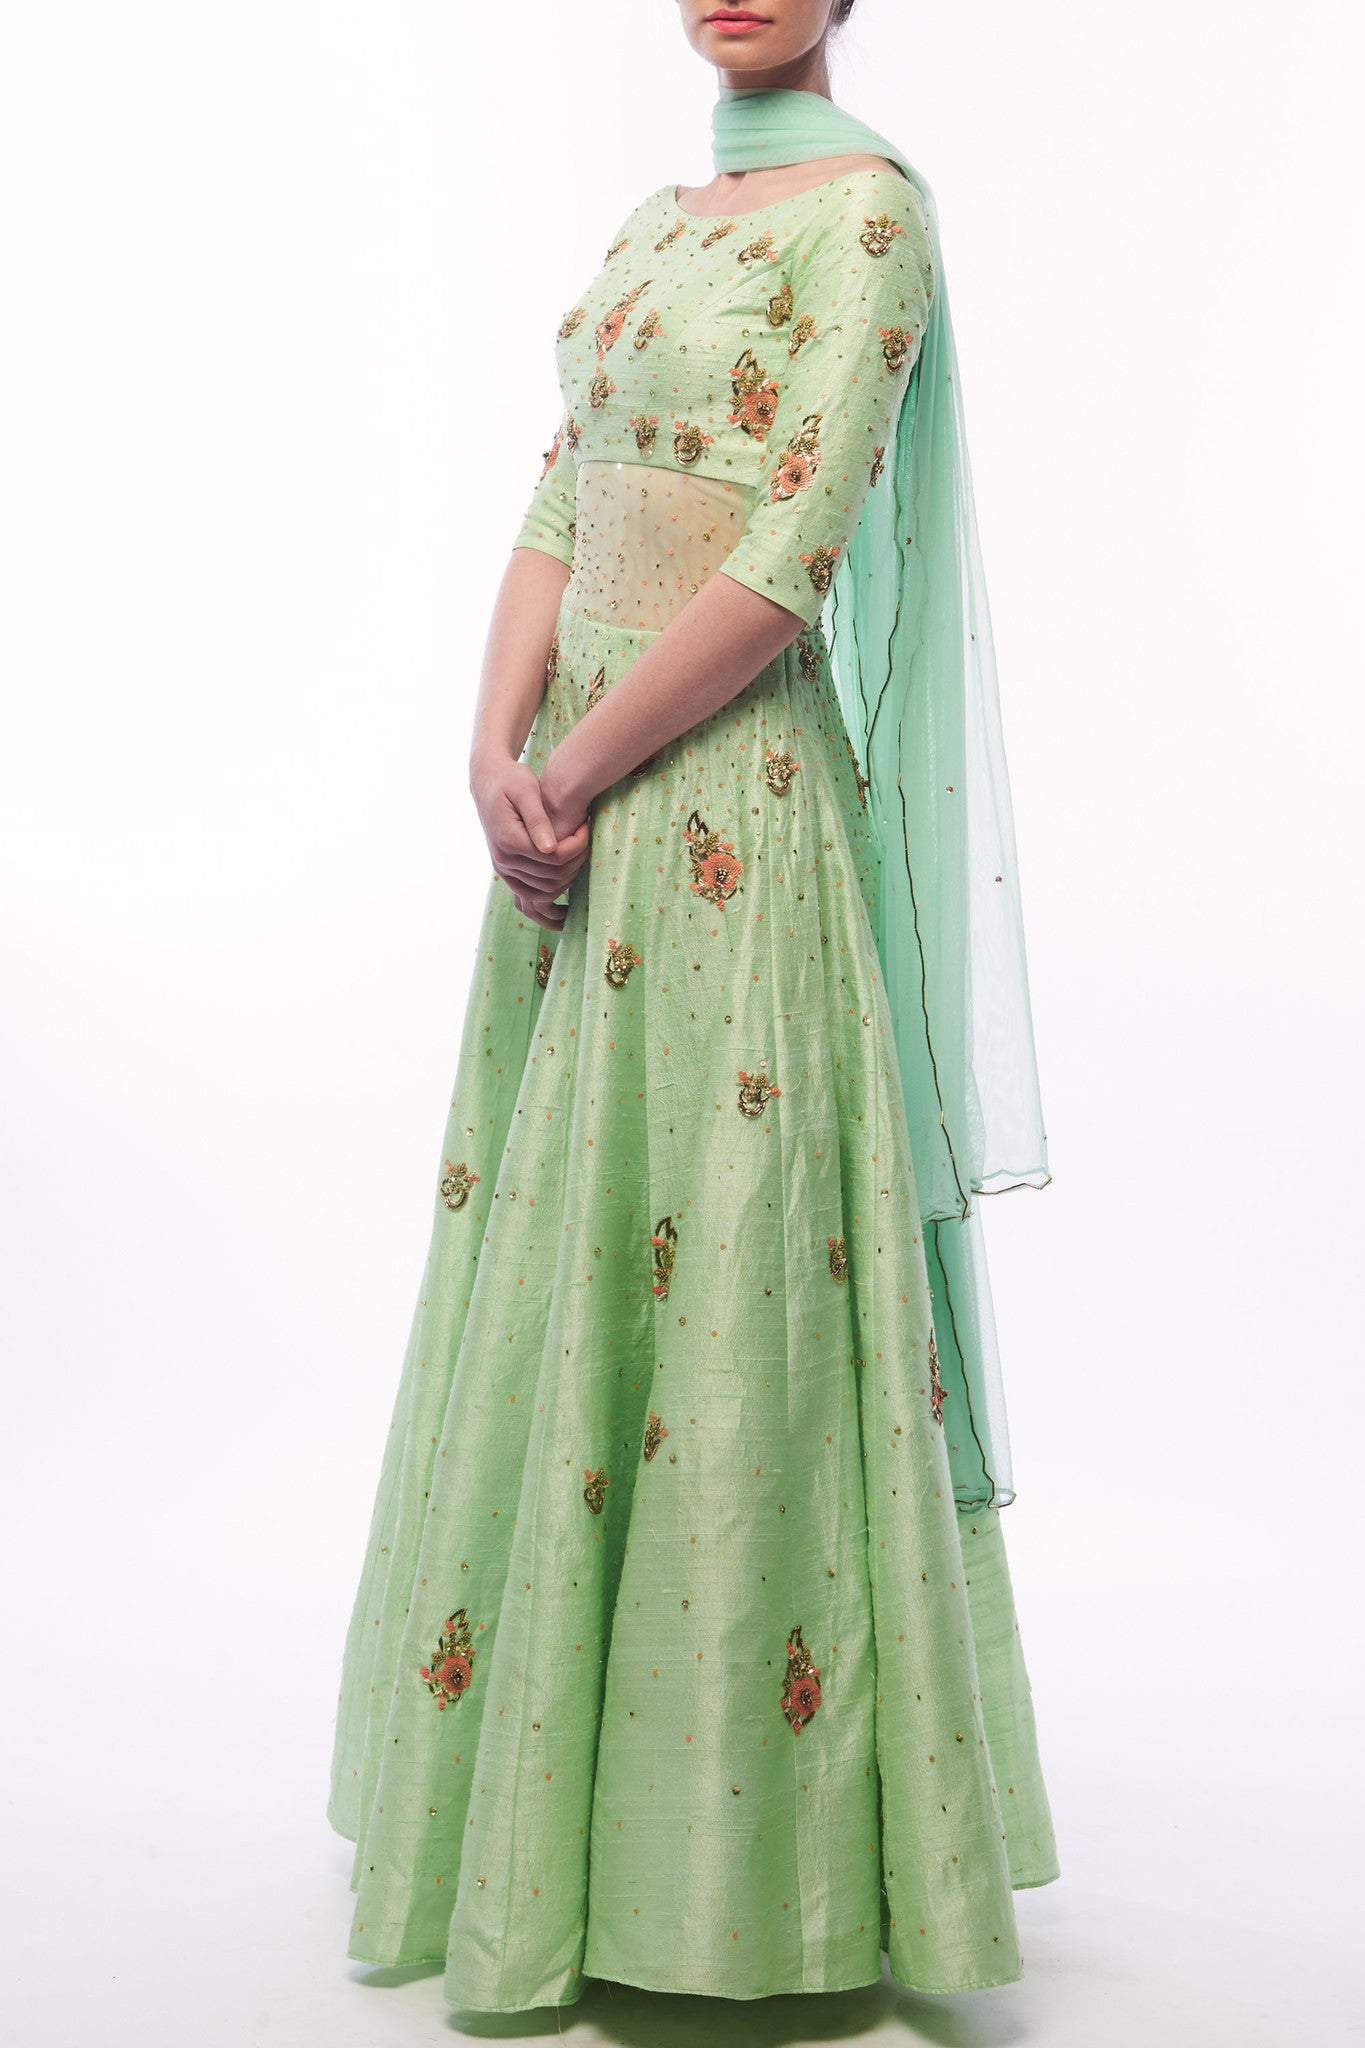 Pistachio Anarkali With Dupatta CloseUp